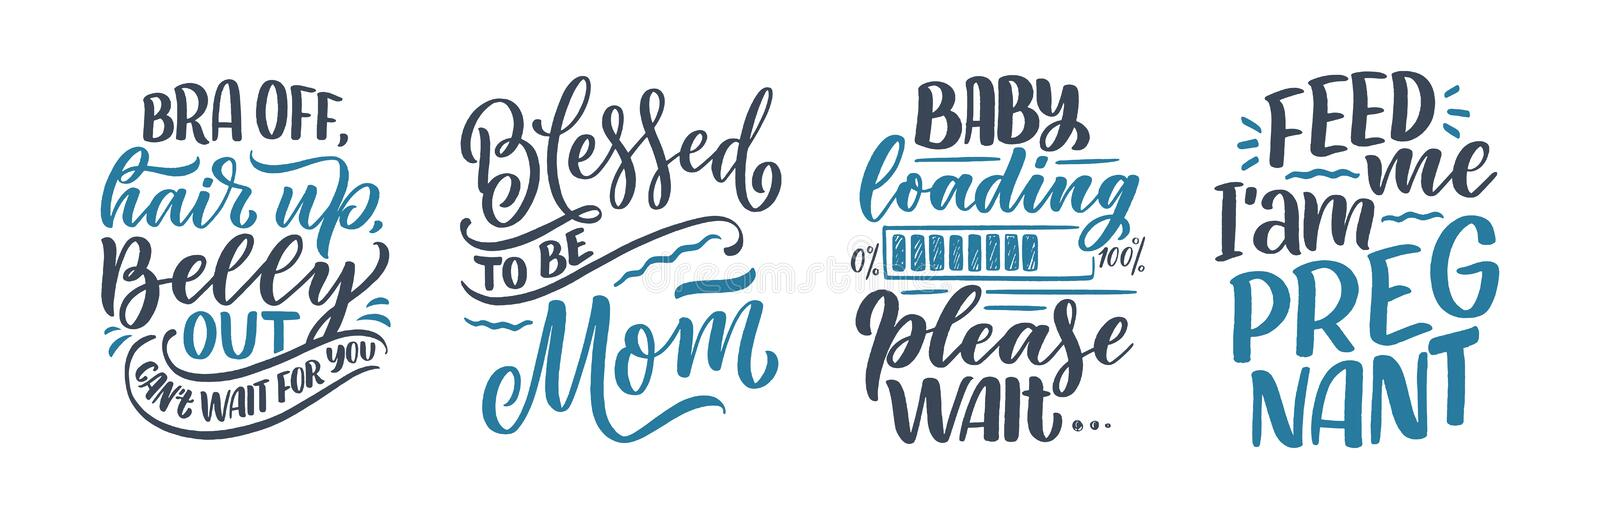 Photography maternity quotes for 100 Creative